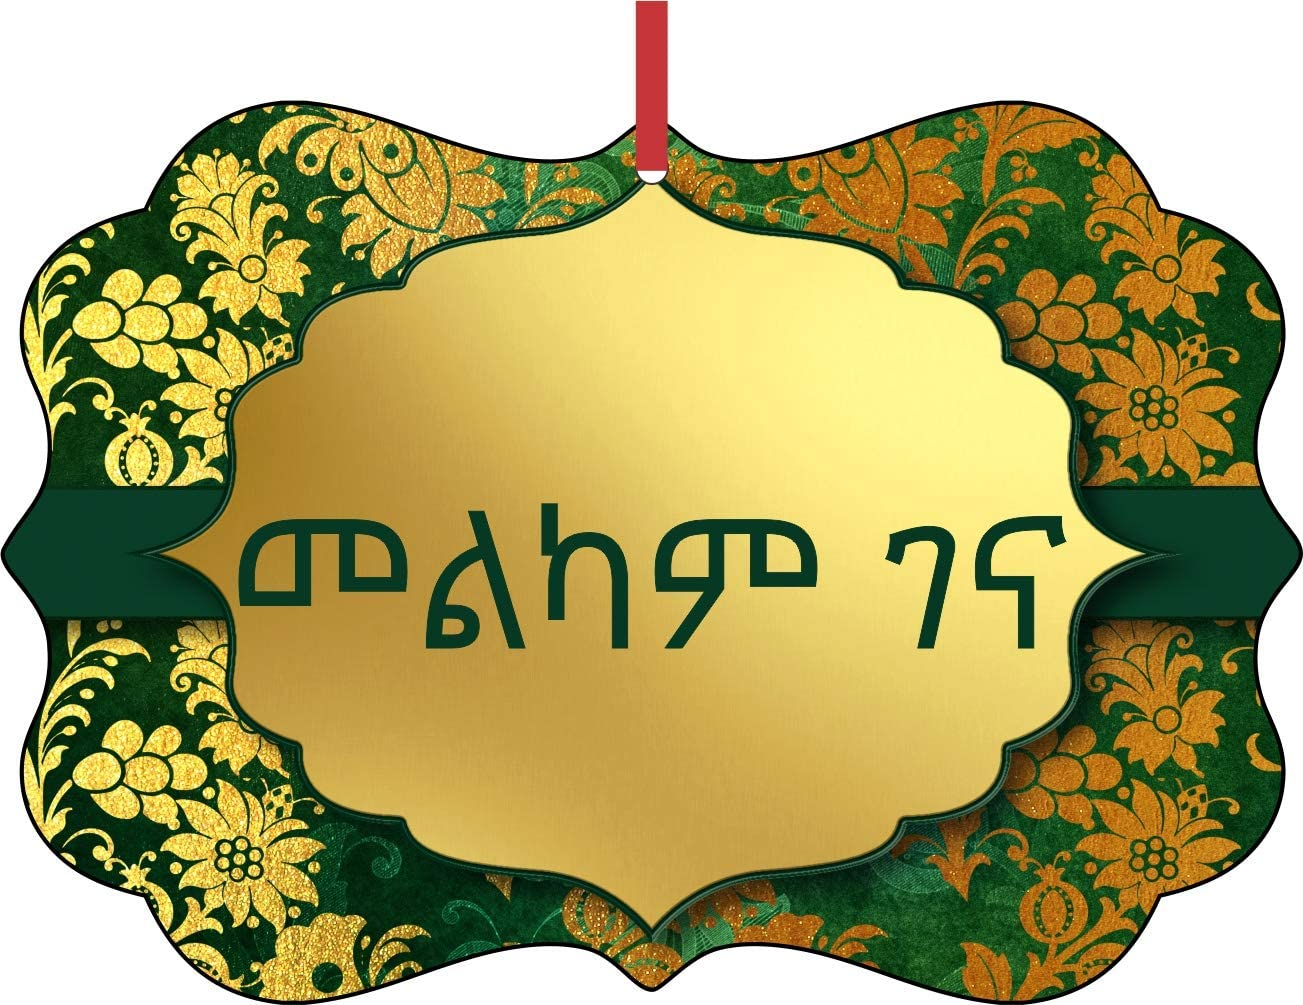 Jacks Outlet Merry Christmas in Amharic Ethiopian Writing Elegant Semigloss Aluminum Christmas Ornament Tree Decoration - Unique Modern Novelty Tree Décor Favors